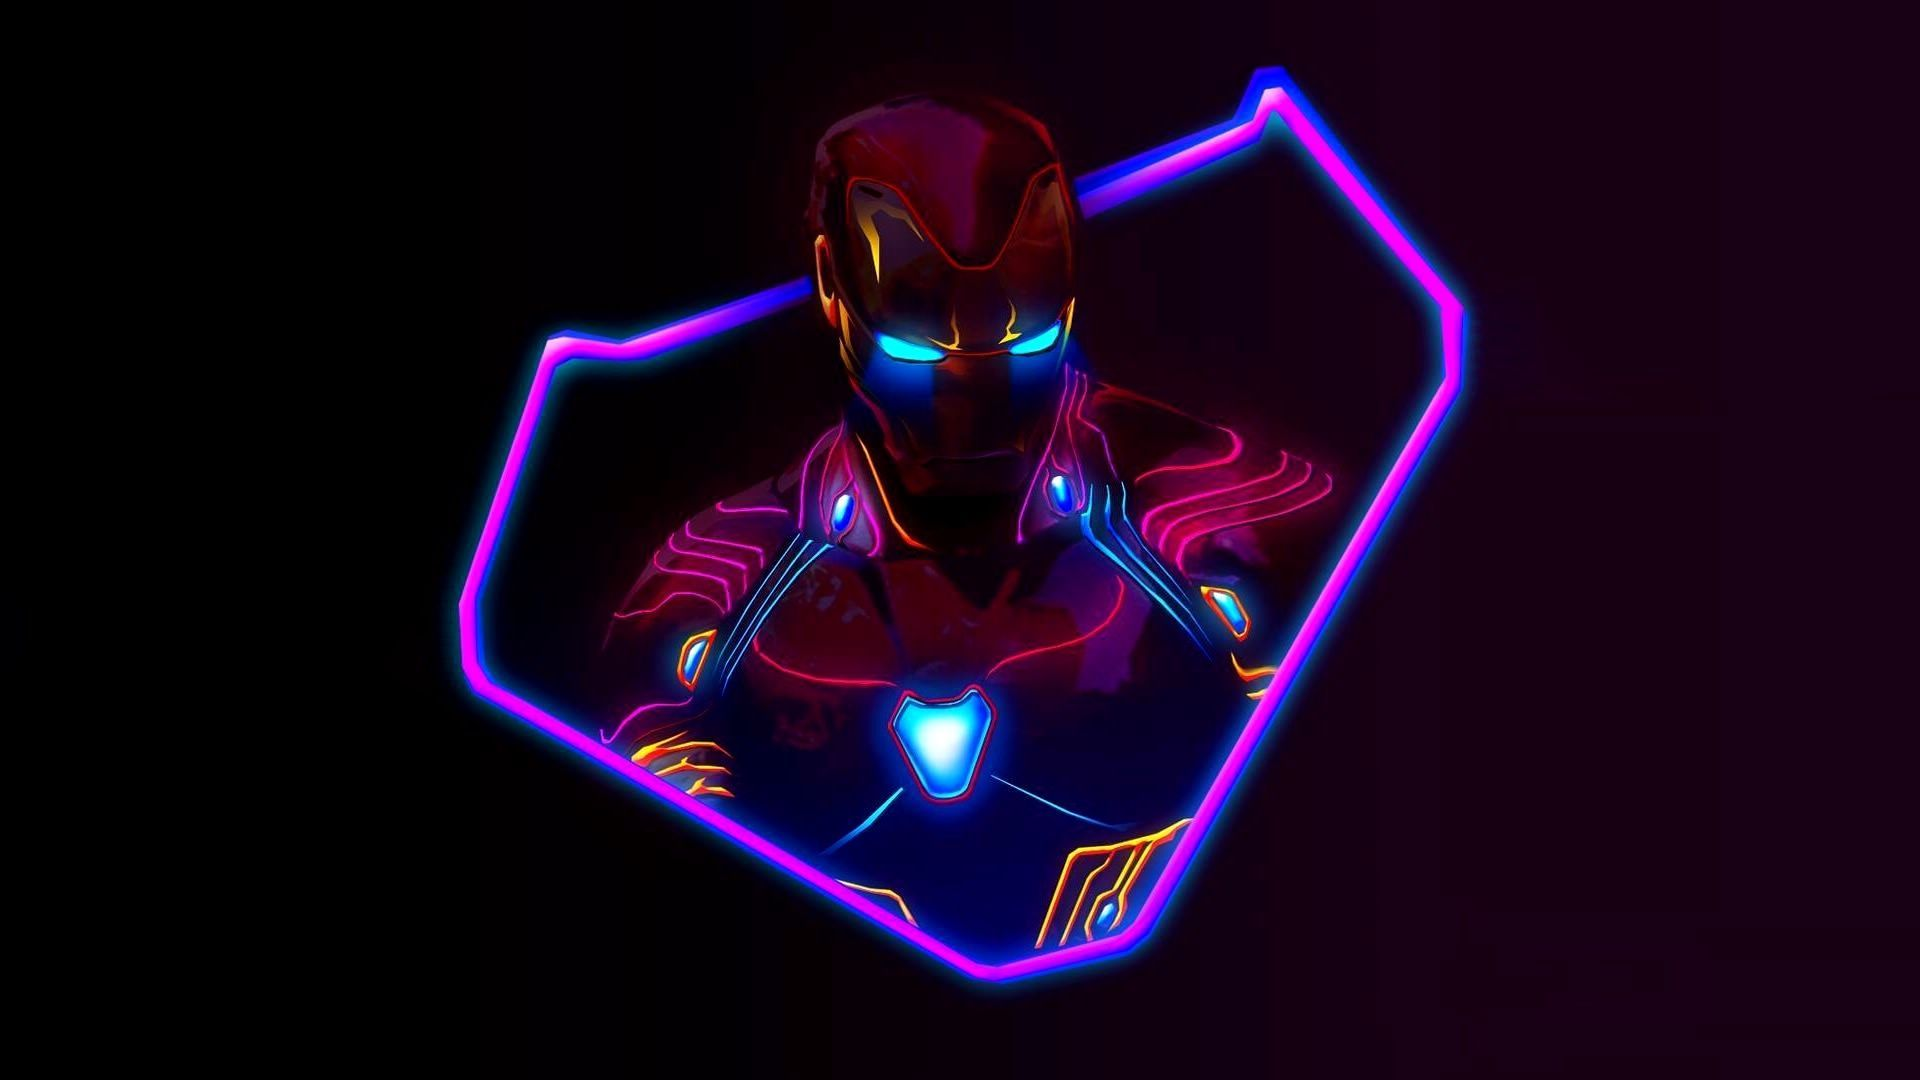 4k Wallpaper For Pc Marvel Gallery 4k In 2020 Neon Wallpaper 4k Desktop Wallpapers Avengers Wallpaper